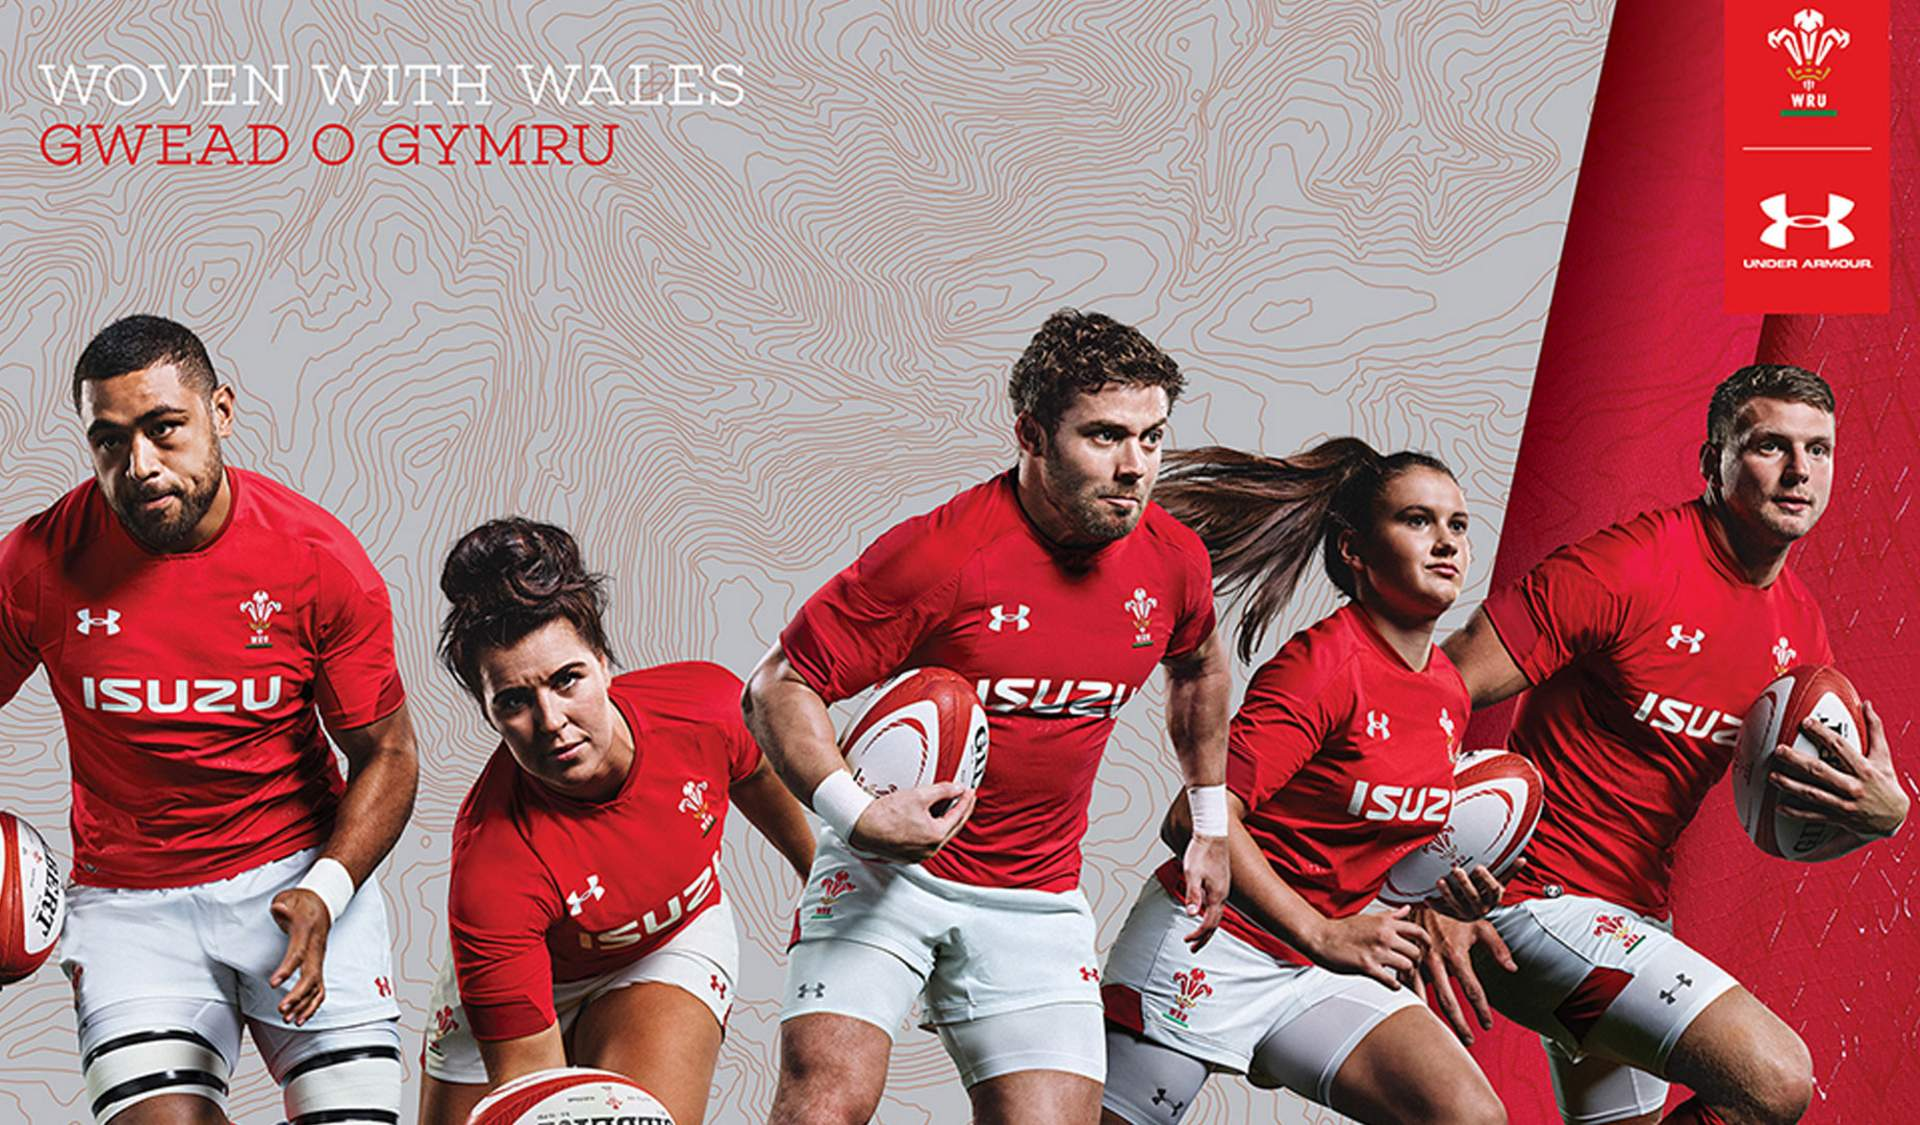 Welsh Rugby and Under Armour launch new home jersey